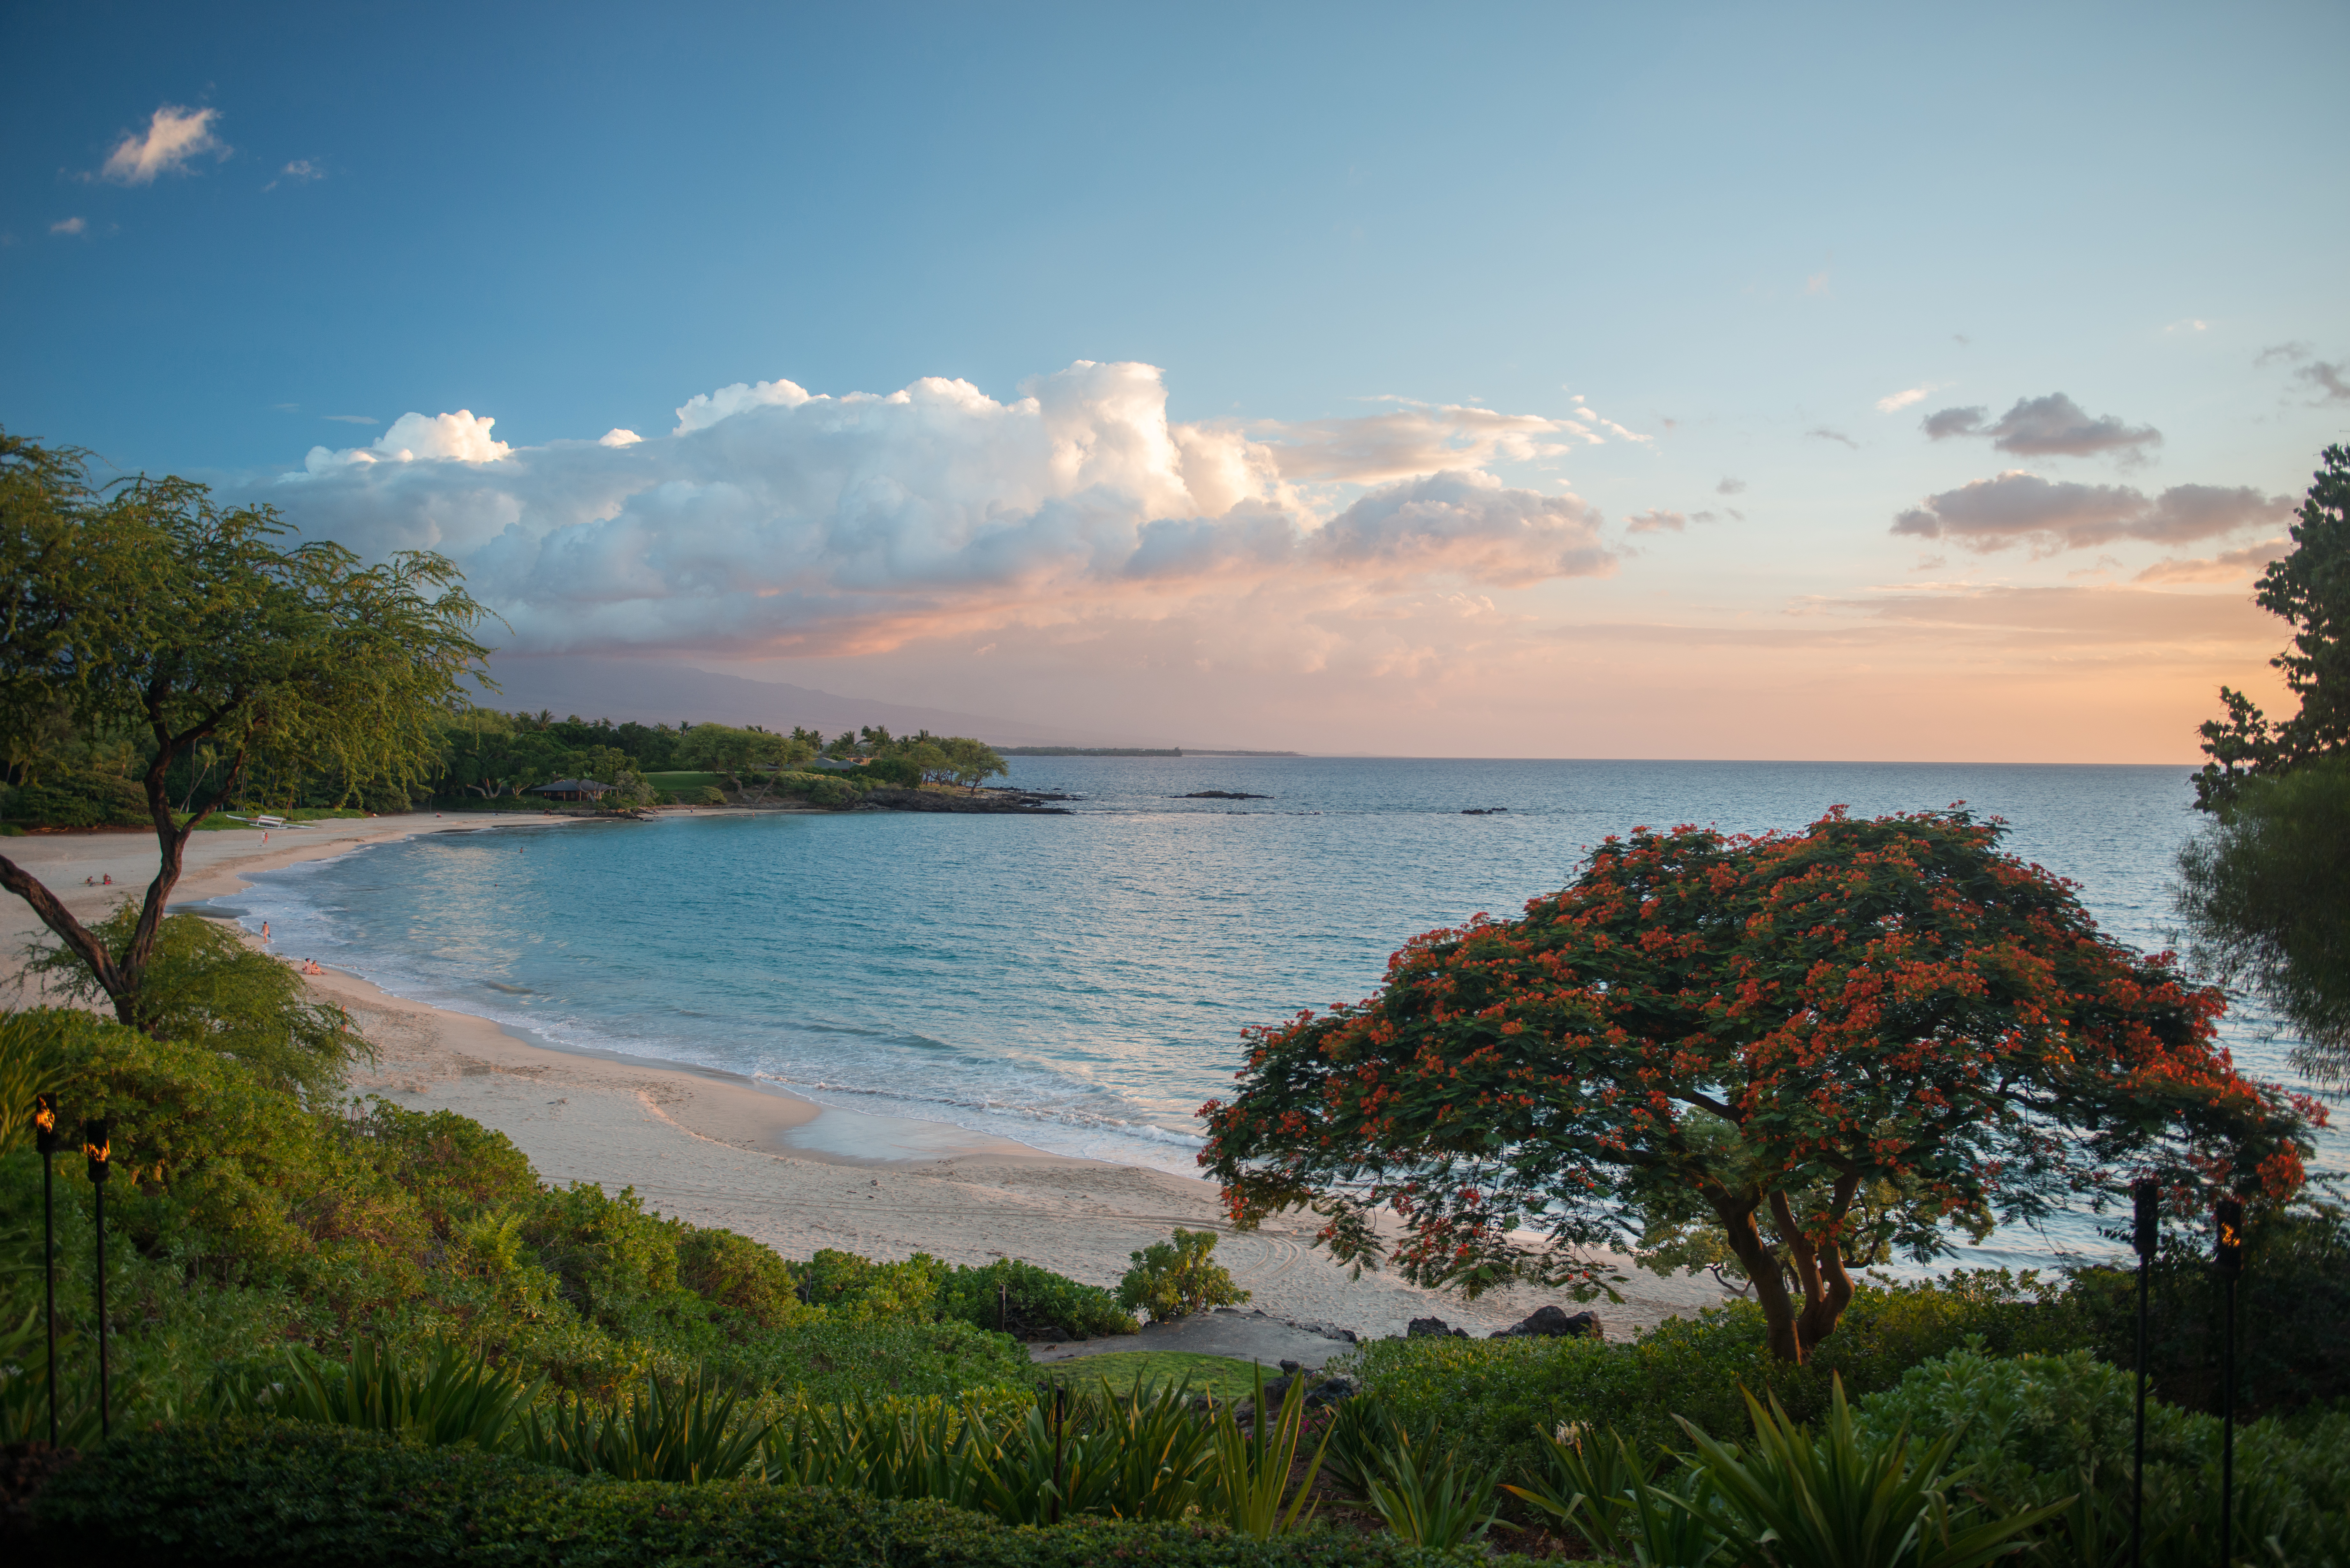 #hawaii, #kona, #kailuakona, #leeward, #crescentbeach, #beach, #sunset, #plumeria, #peace